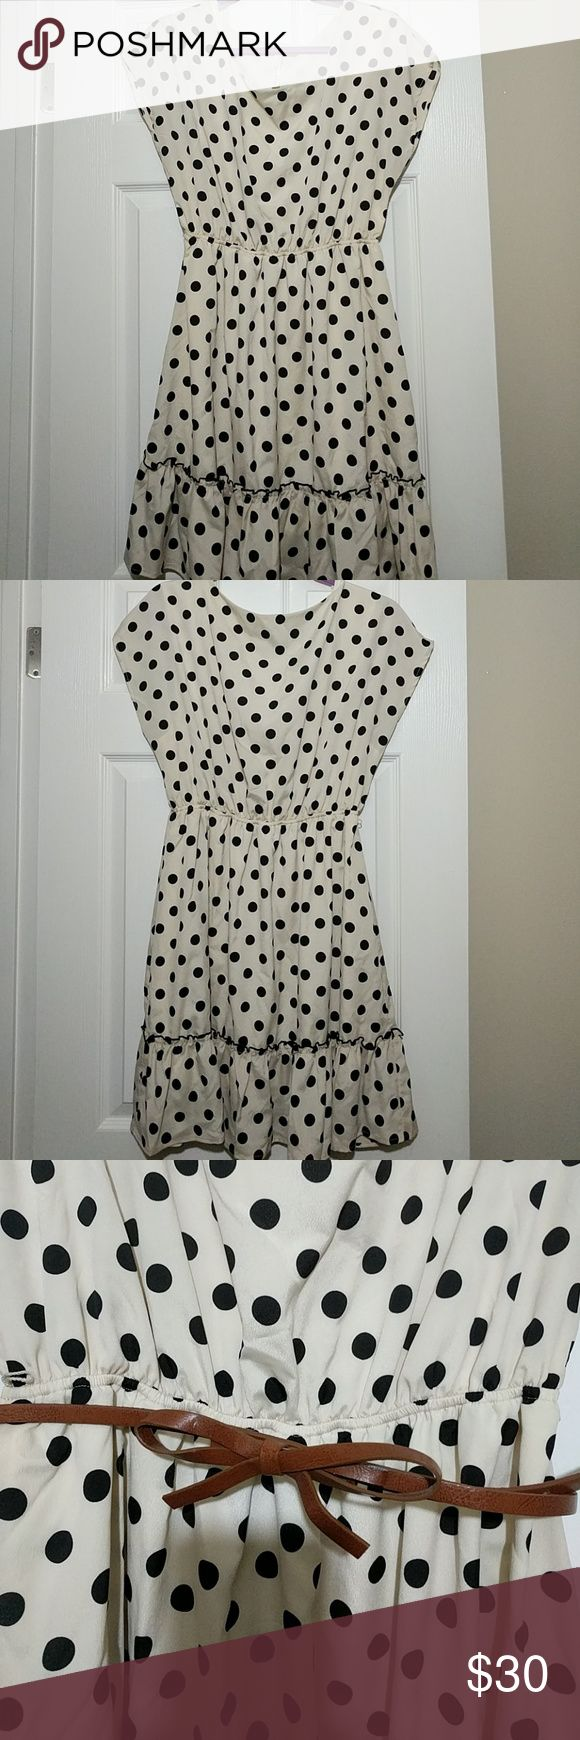 Modcloth polka dot dress Polka dot dress in cream and black by 7th Day (from Modcloth). Comes with an attached slip. Very cute and fun dress for a night out or for an event.   Comes with a brown bow belt. ModCloth Dresses Mini